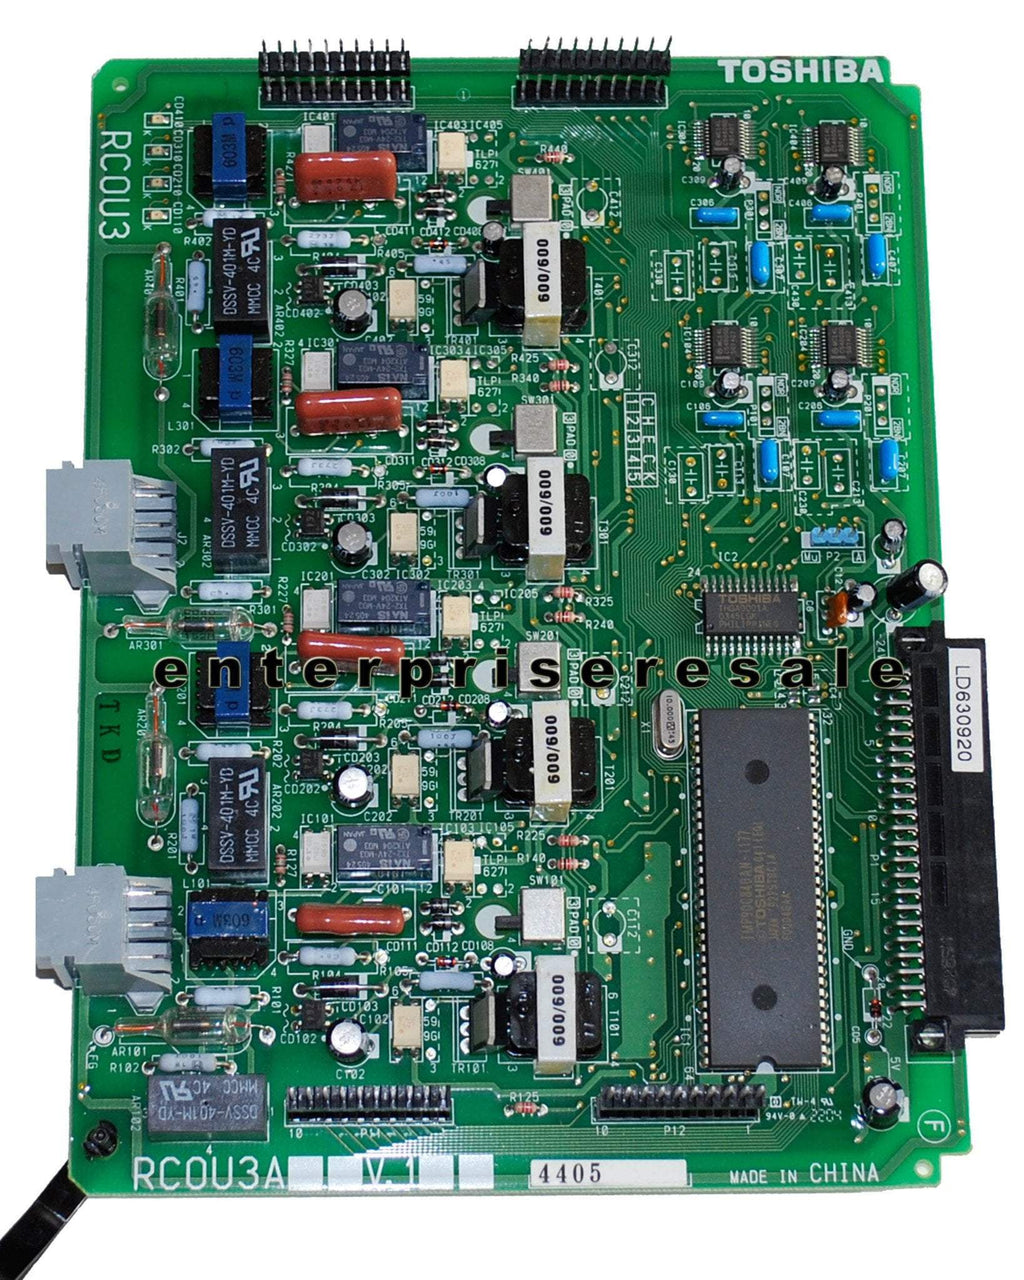 Toshiba Phone Switching Systems, PBXs Toshiba (RCOU3A) V.1 CO Line Card CTX CIX DK Strata RCOU